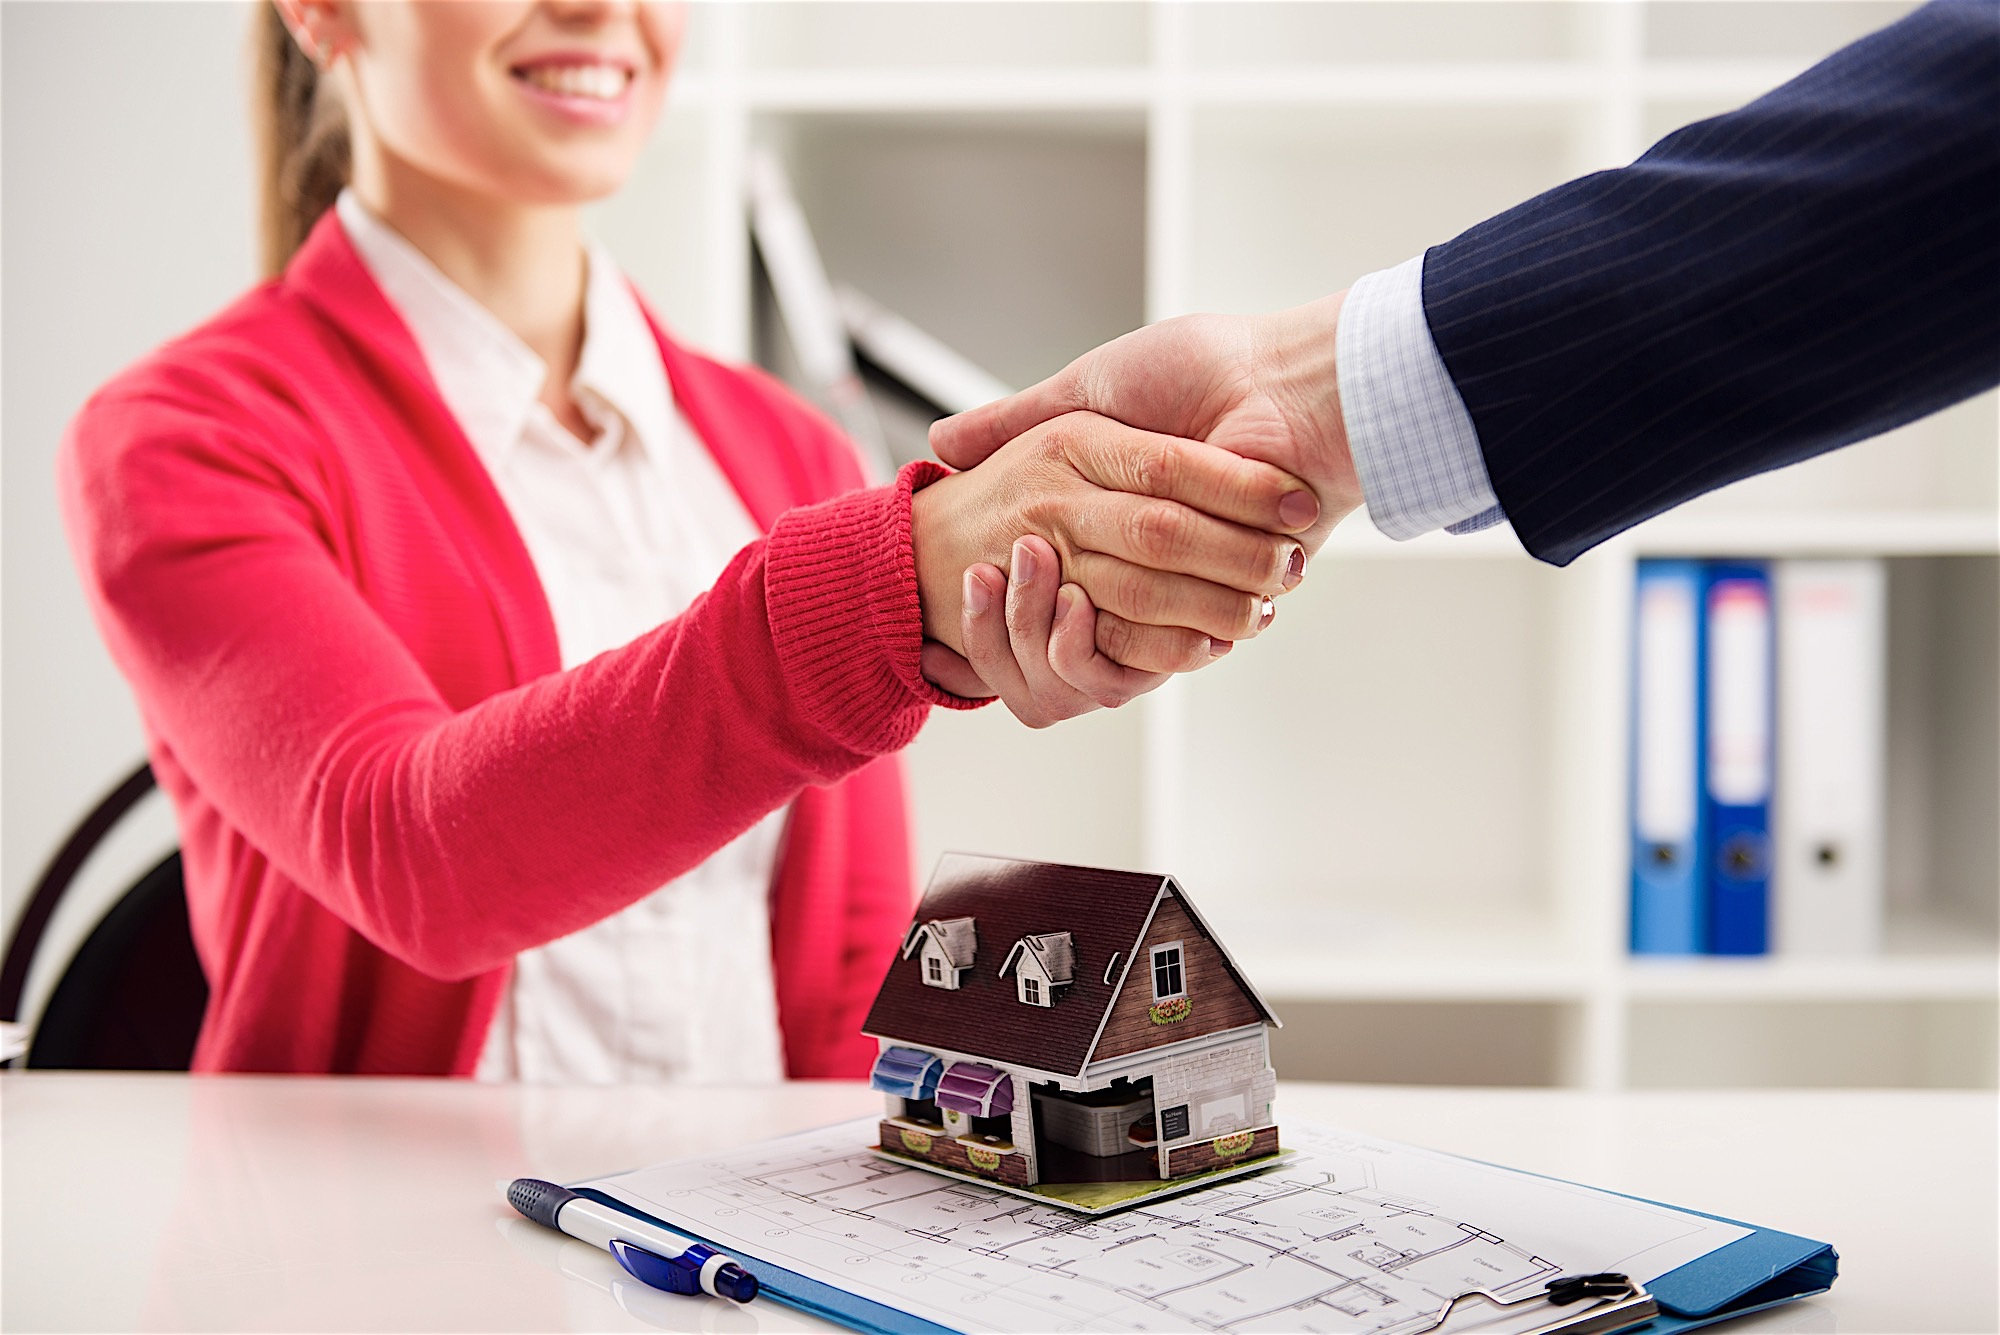 What To Look While Choosing An Real Estate Agent?